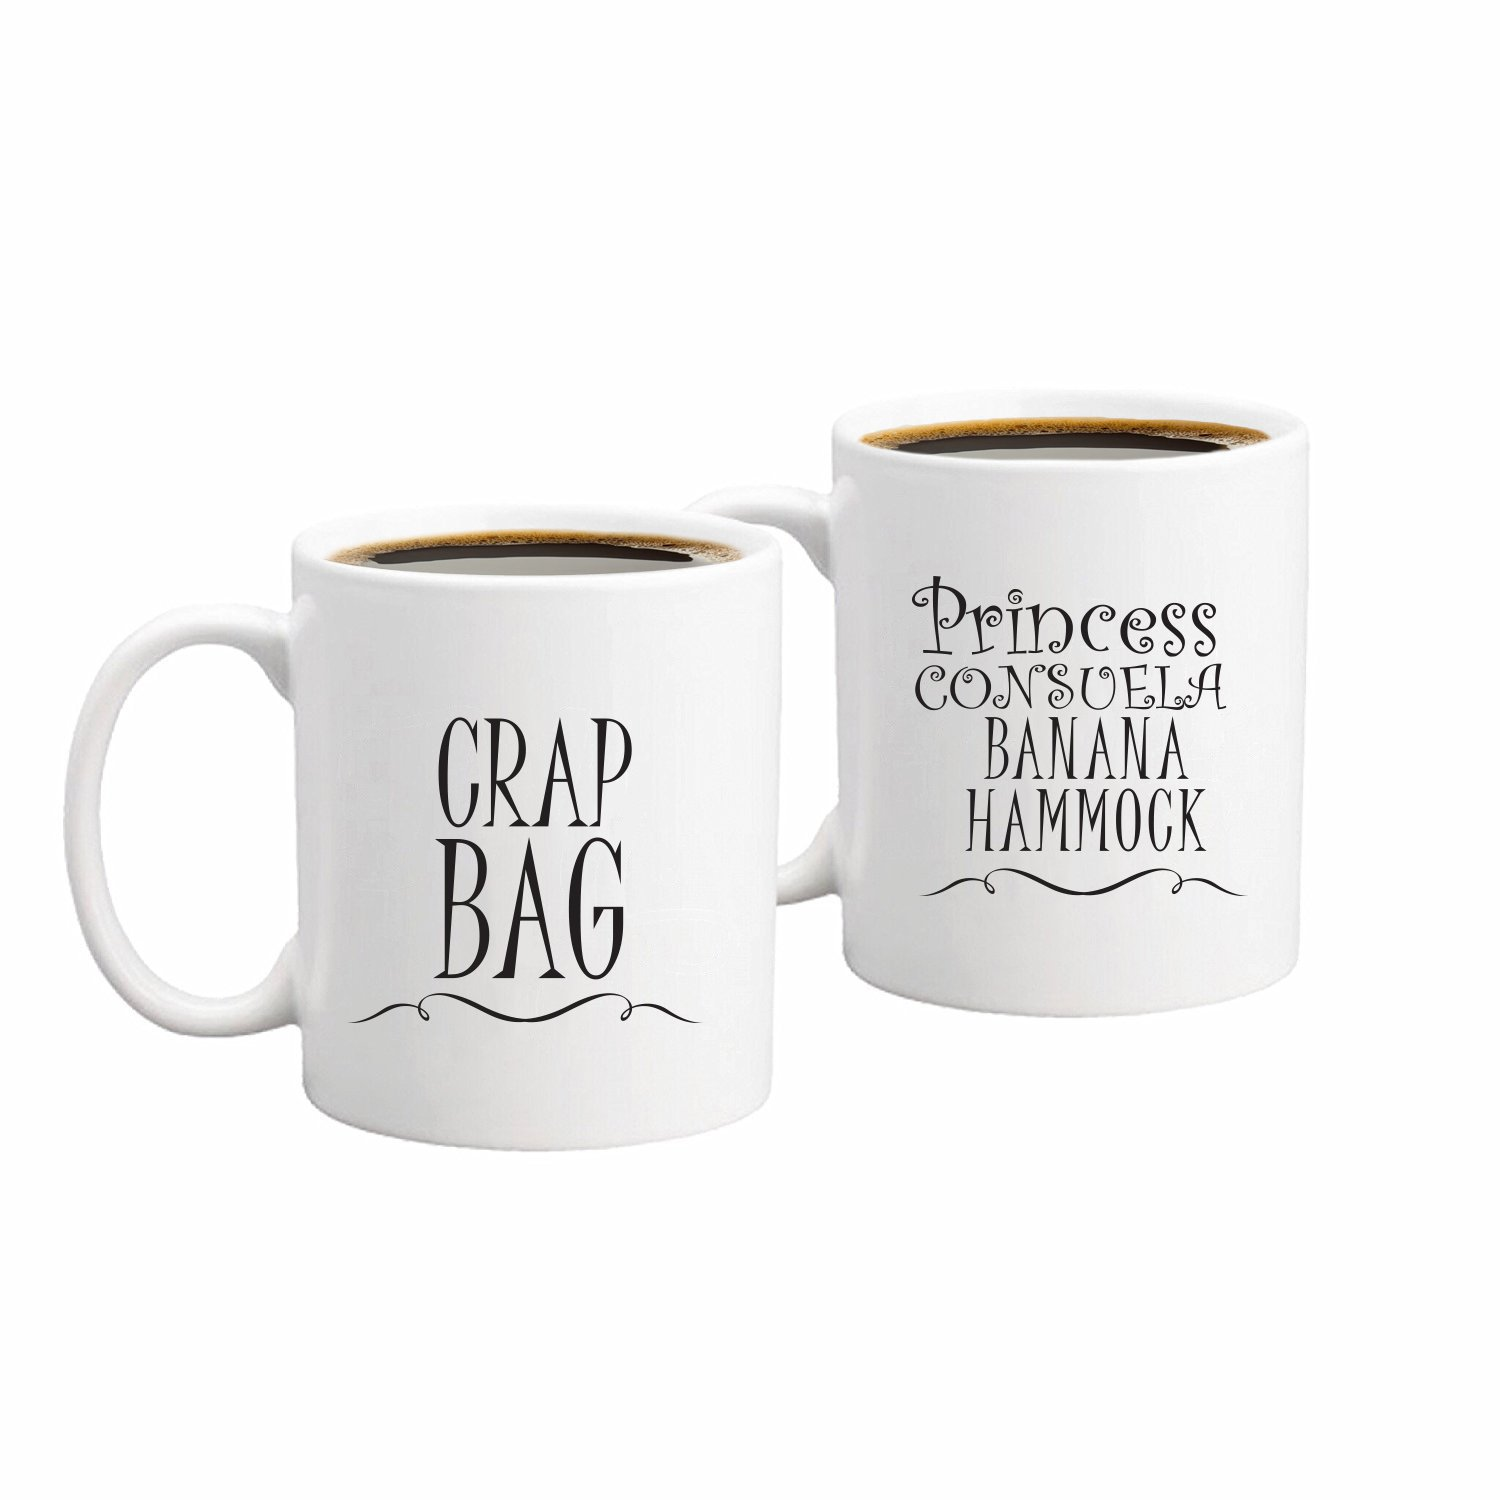 Princess Consuela Banana Hammock & Crap Bag Couples Funny Coffee Mug Set 11oz - Friends TV Show Quote - Central Perk - Unique Gift For Boyfriend and Girlfriend - His and Hers Anniversary Present by Gelid (Image #1)